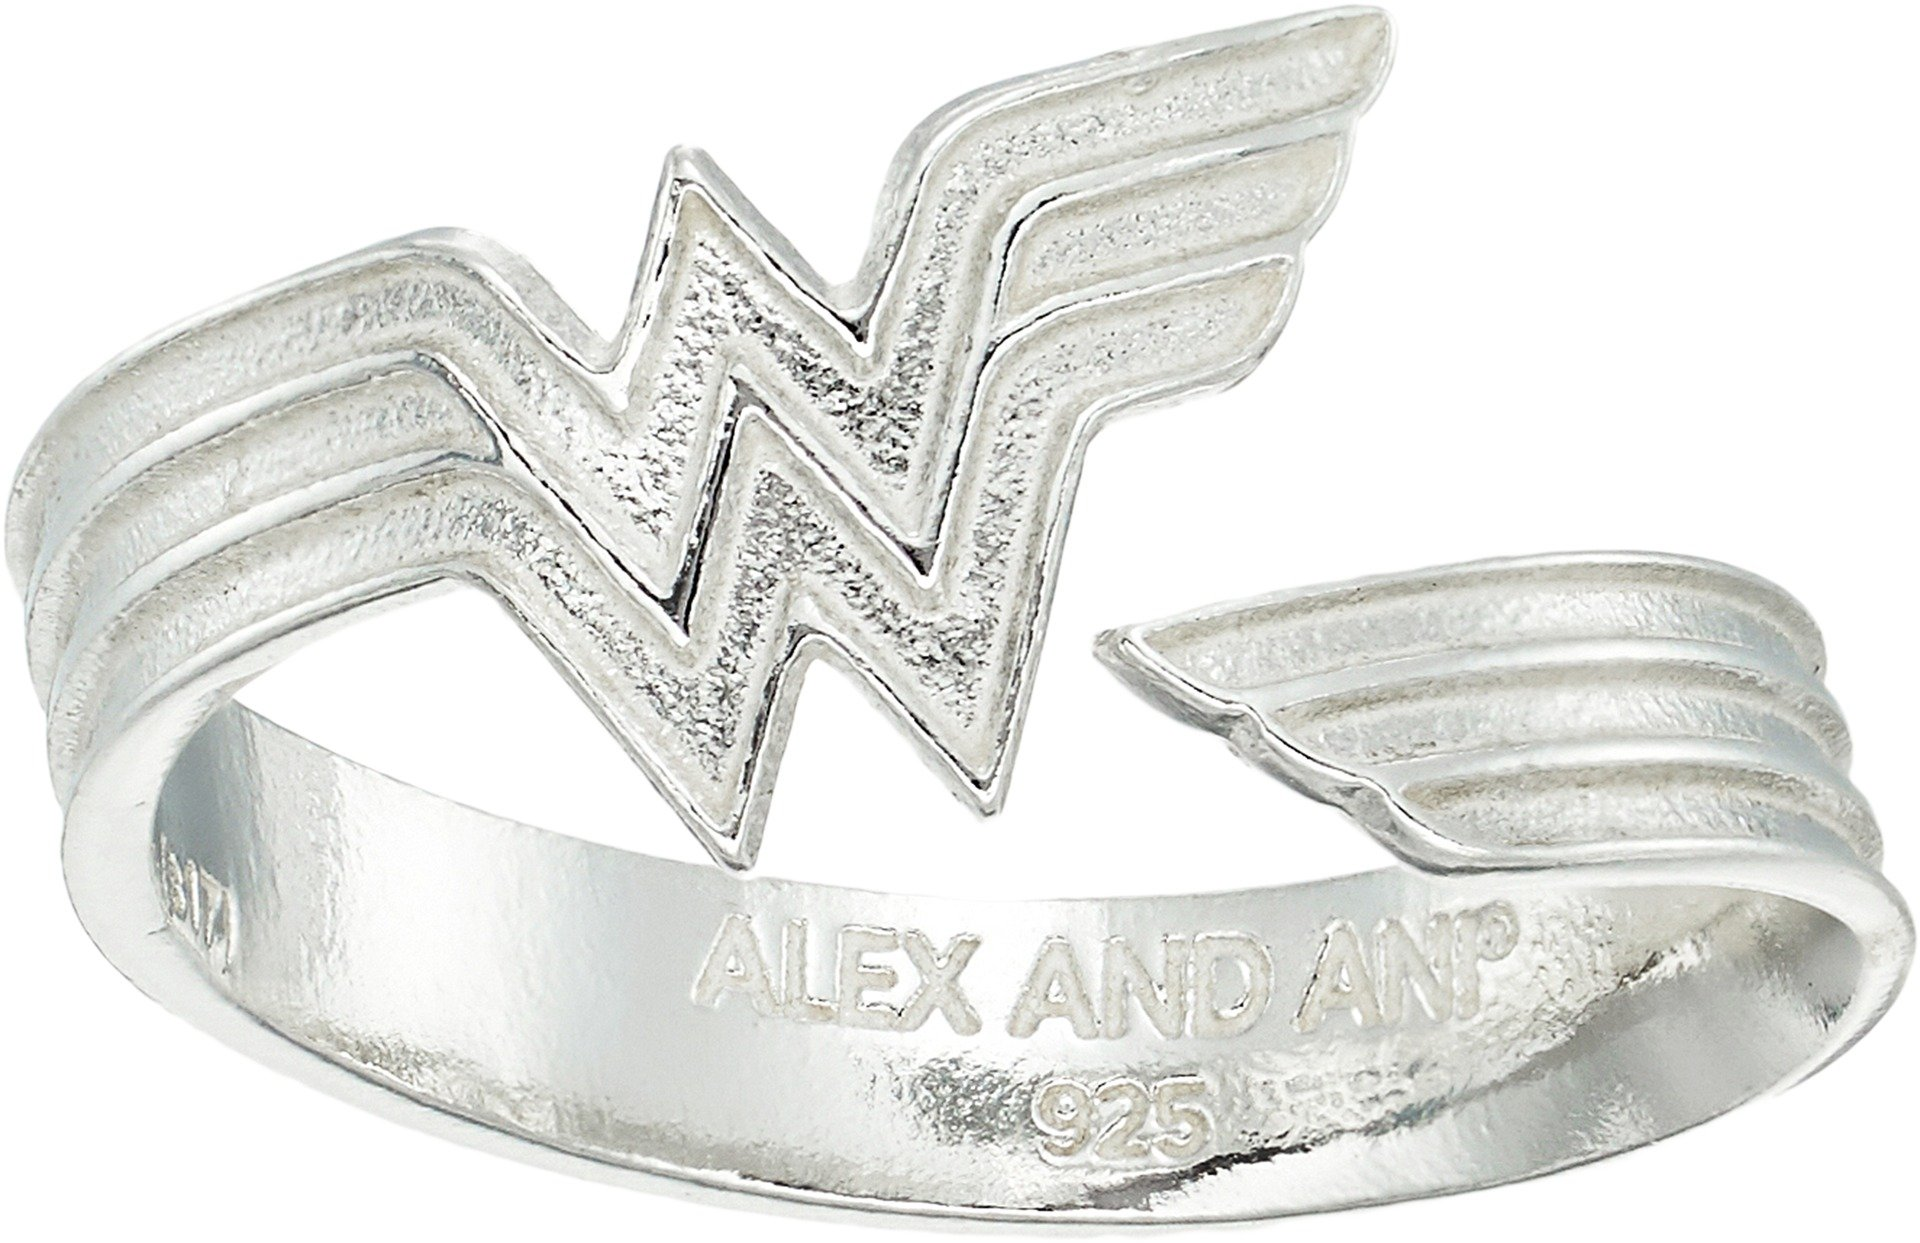 Alex and Ani Women's Wonder Woman Ring Wrap Sterling Silver One Size